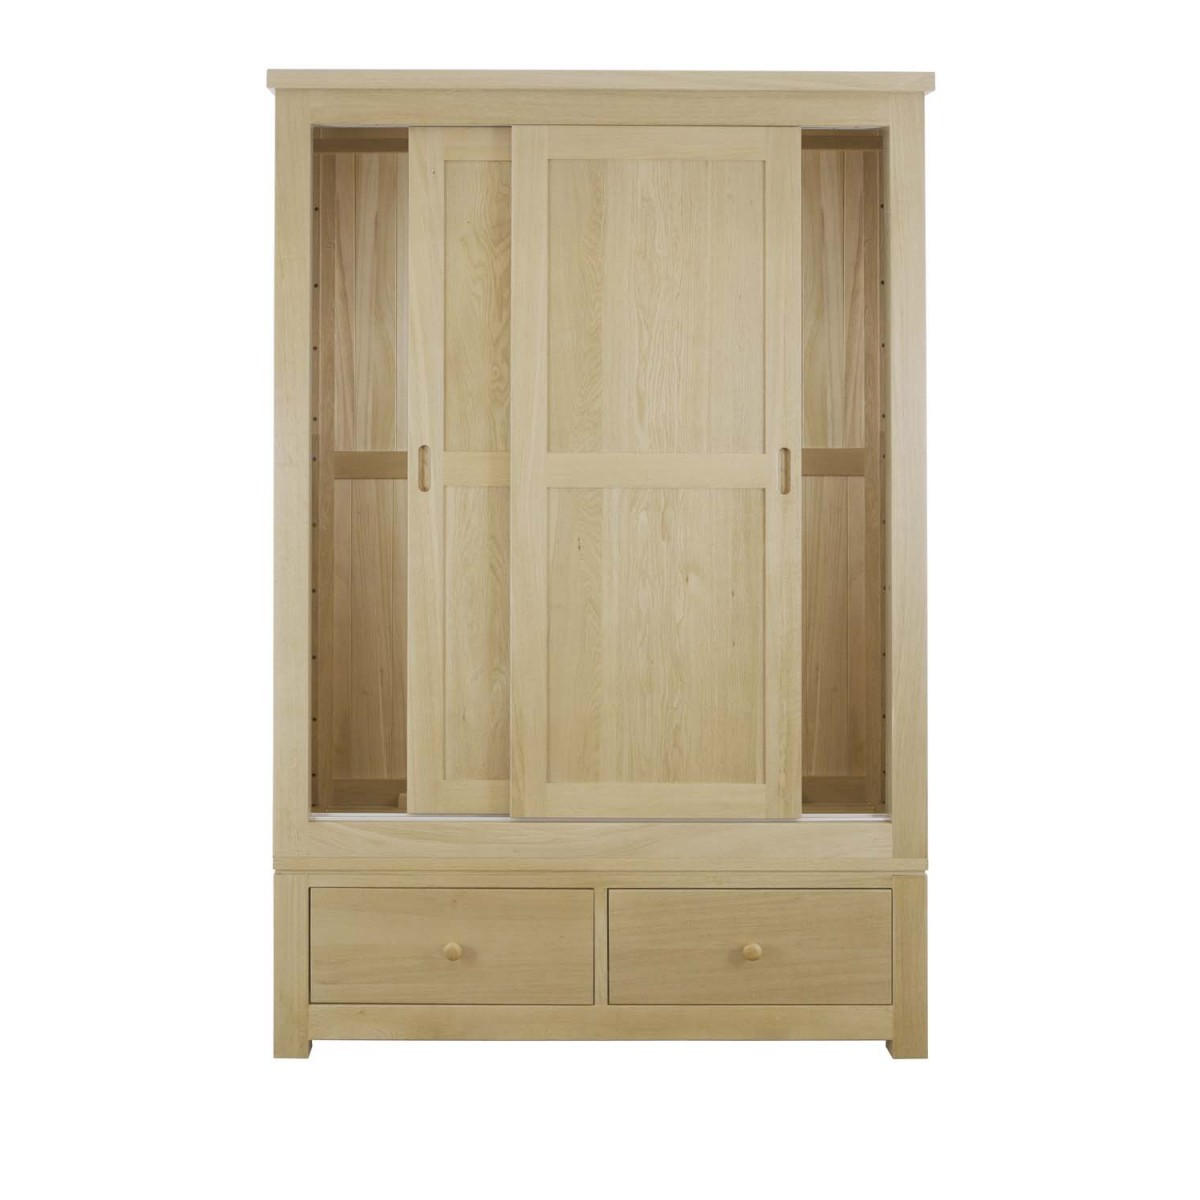 Sliding door double wardrobe solid oak for Double sliding doors